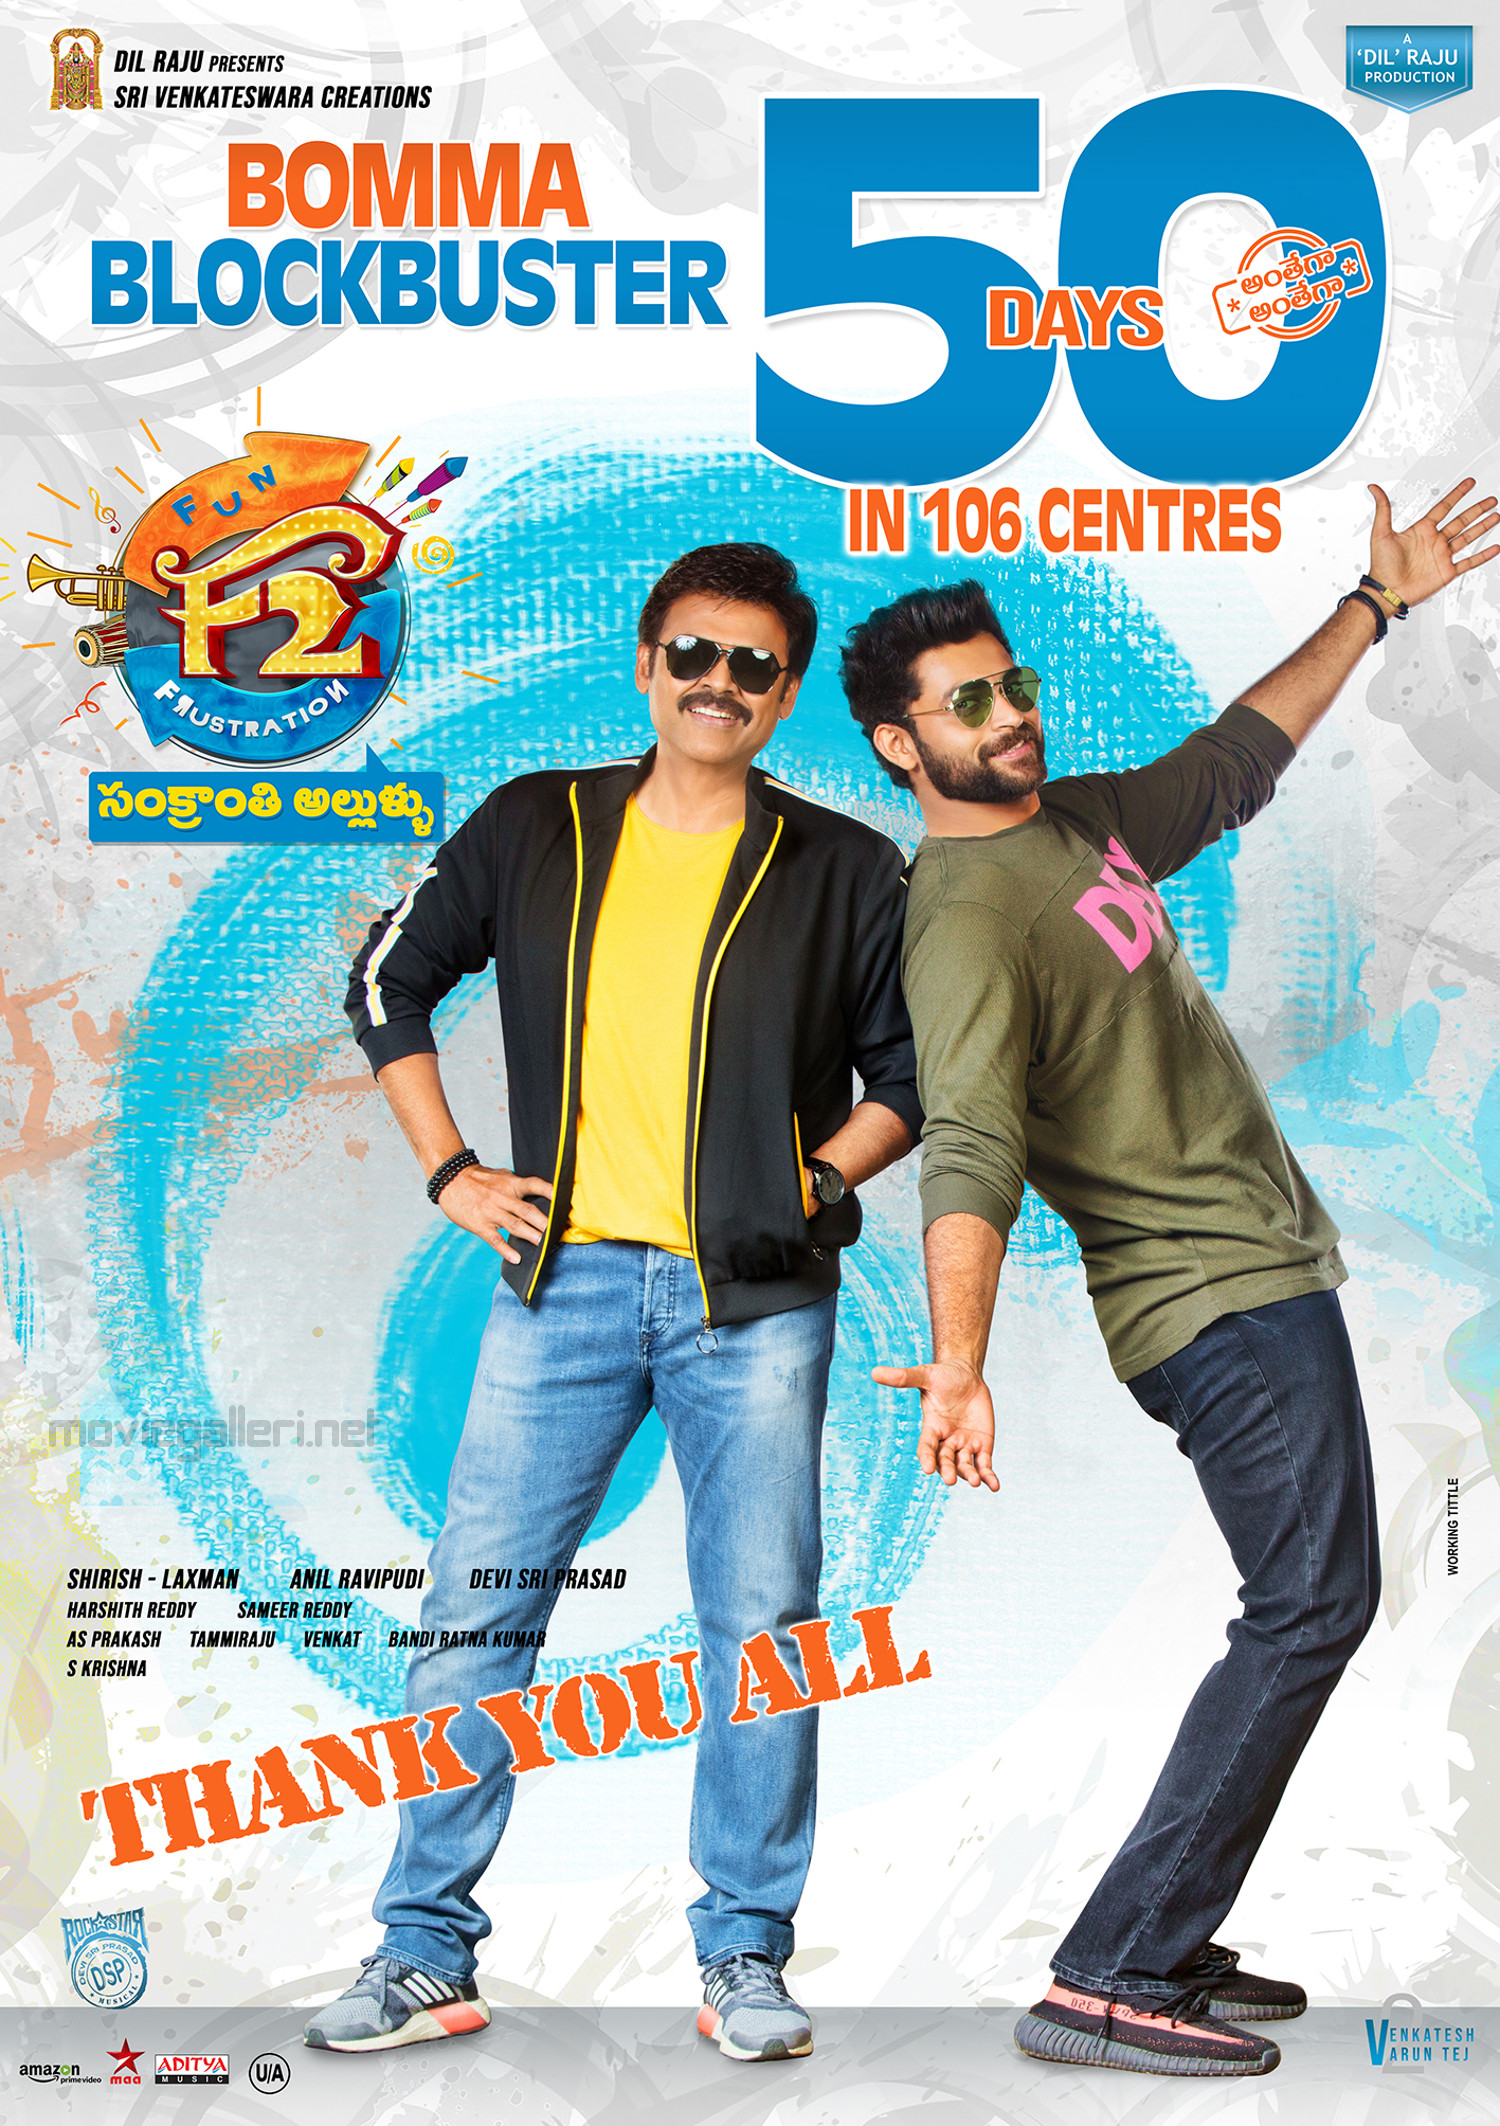 Venkatesh & Varun Tej @ F2 Movie 50 Days Posters HD